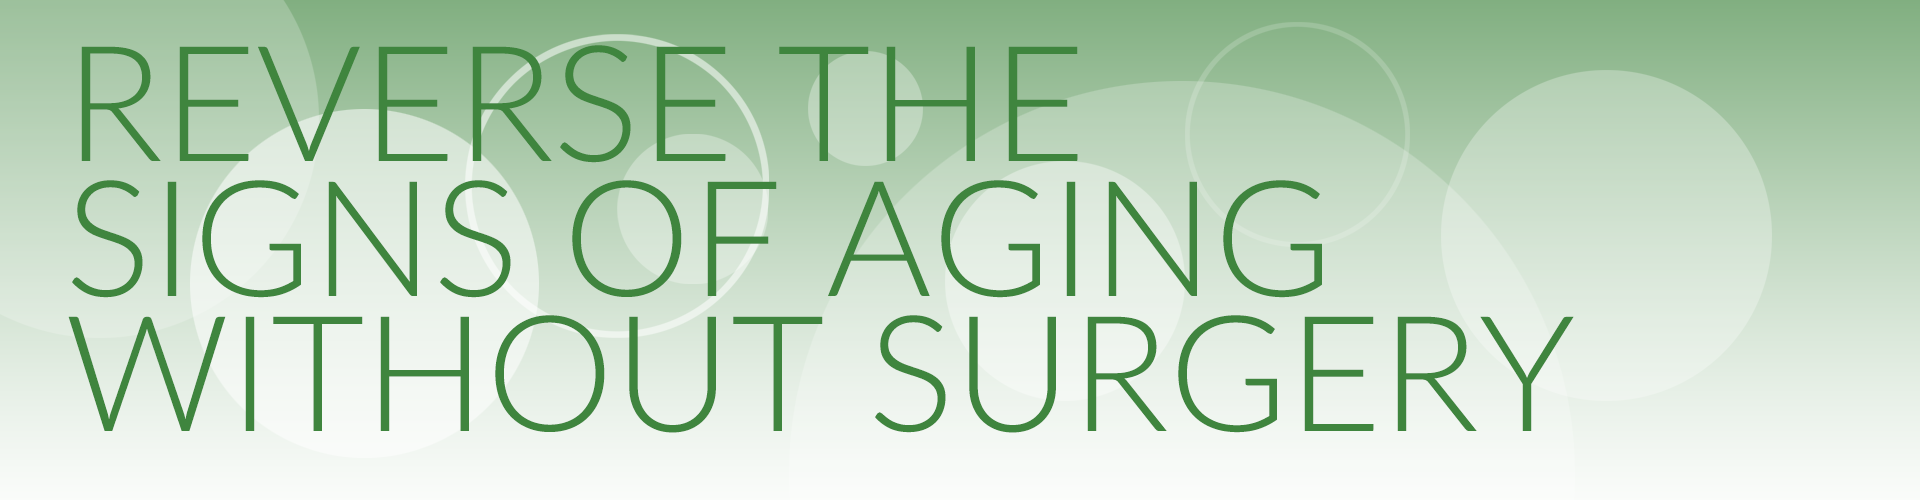 Reverse the signs of ageing without surgery